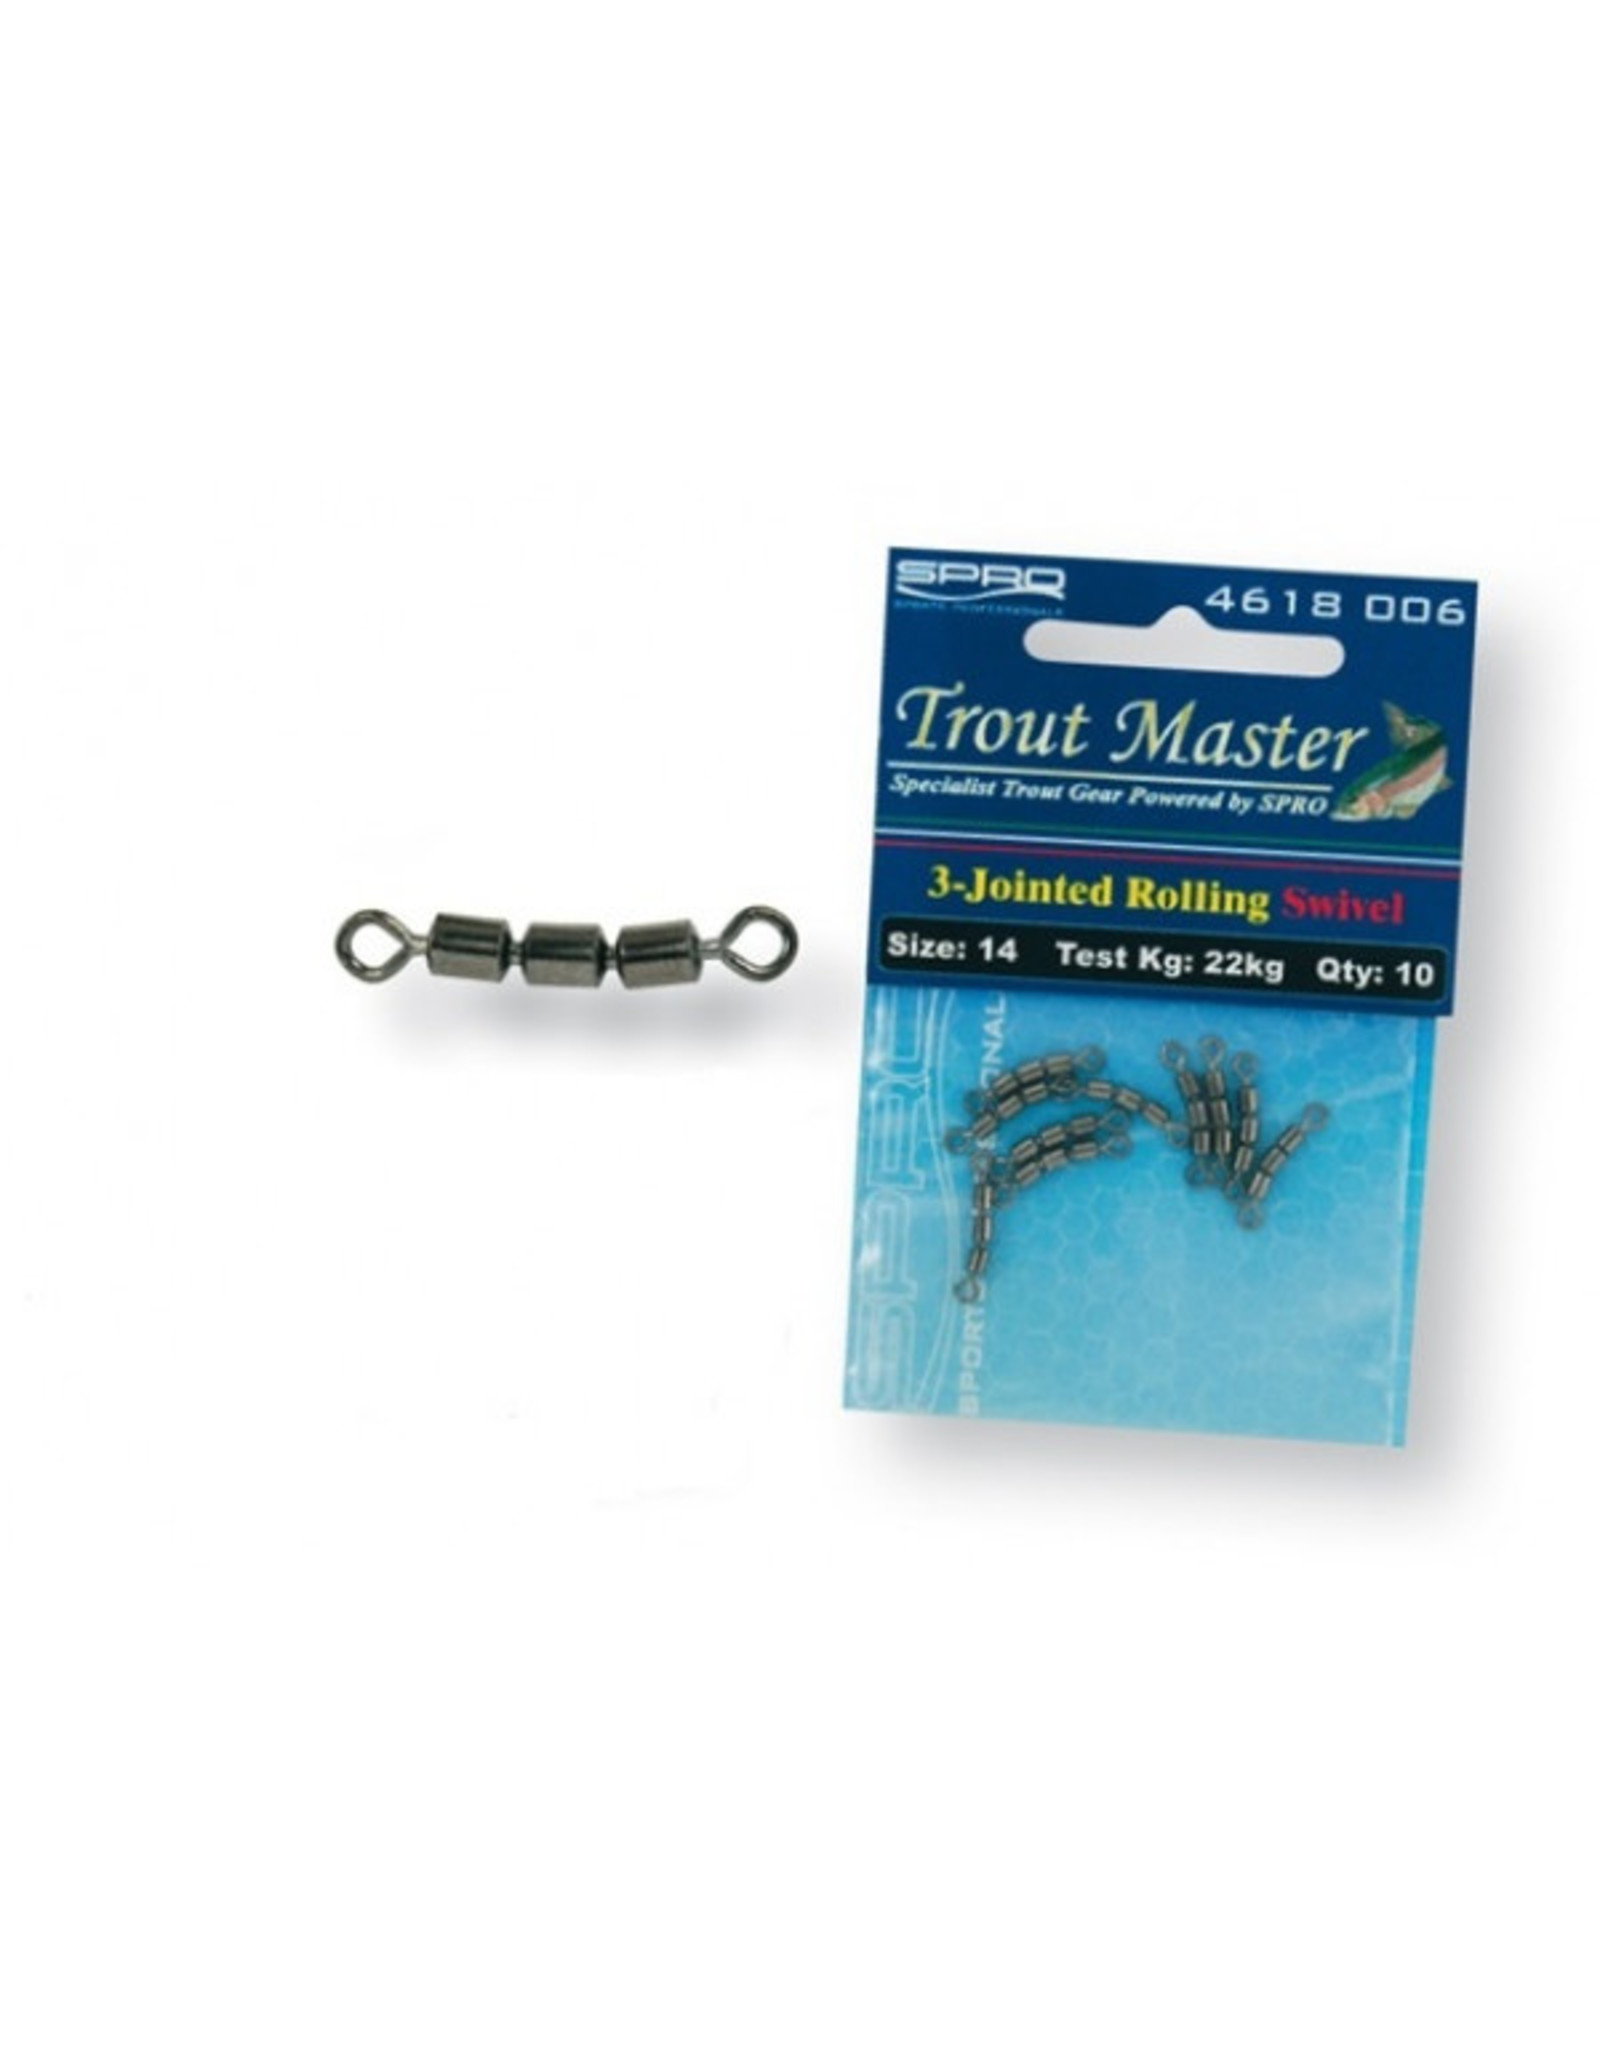 TROMA Spro 3- jointed Rolling Swivel